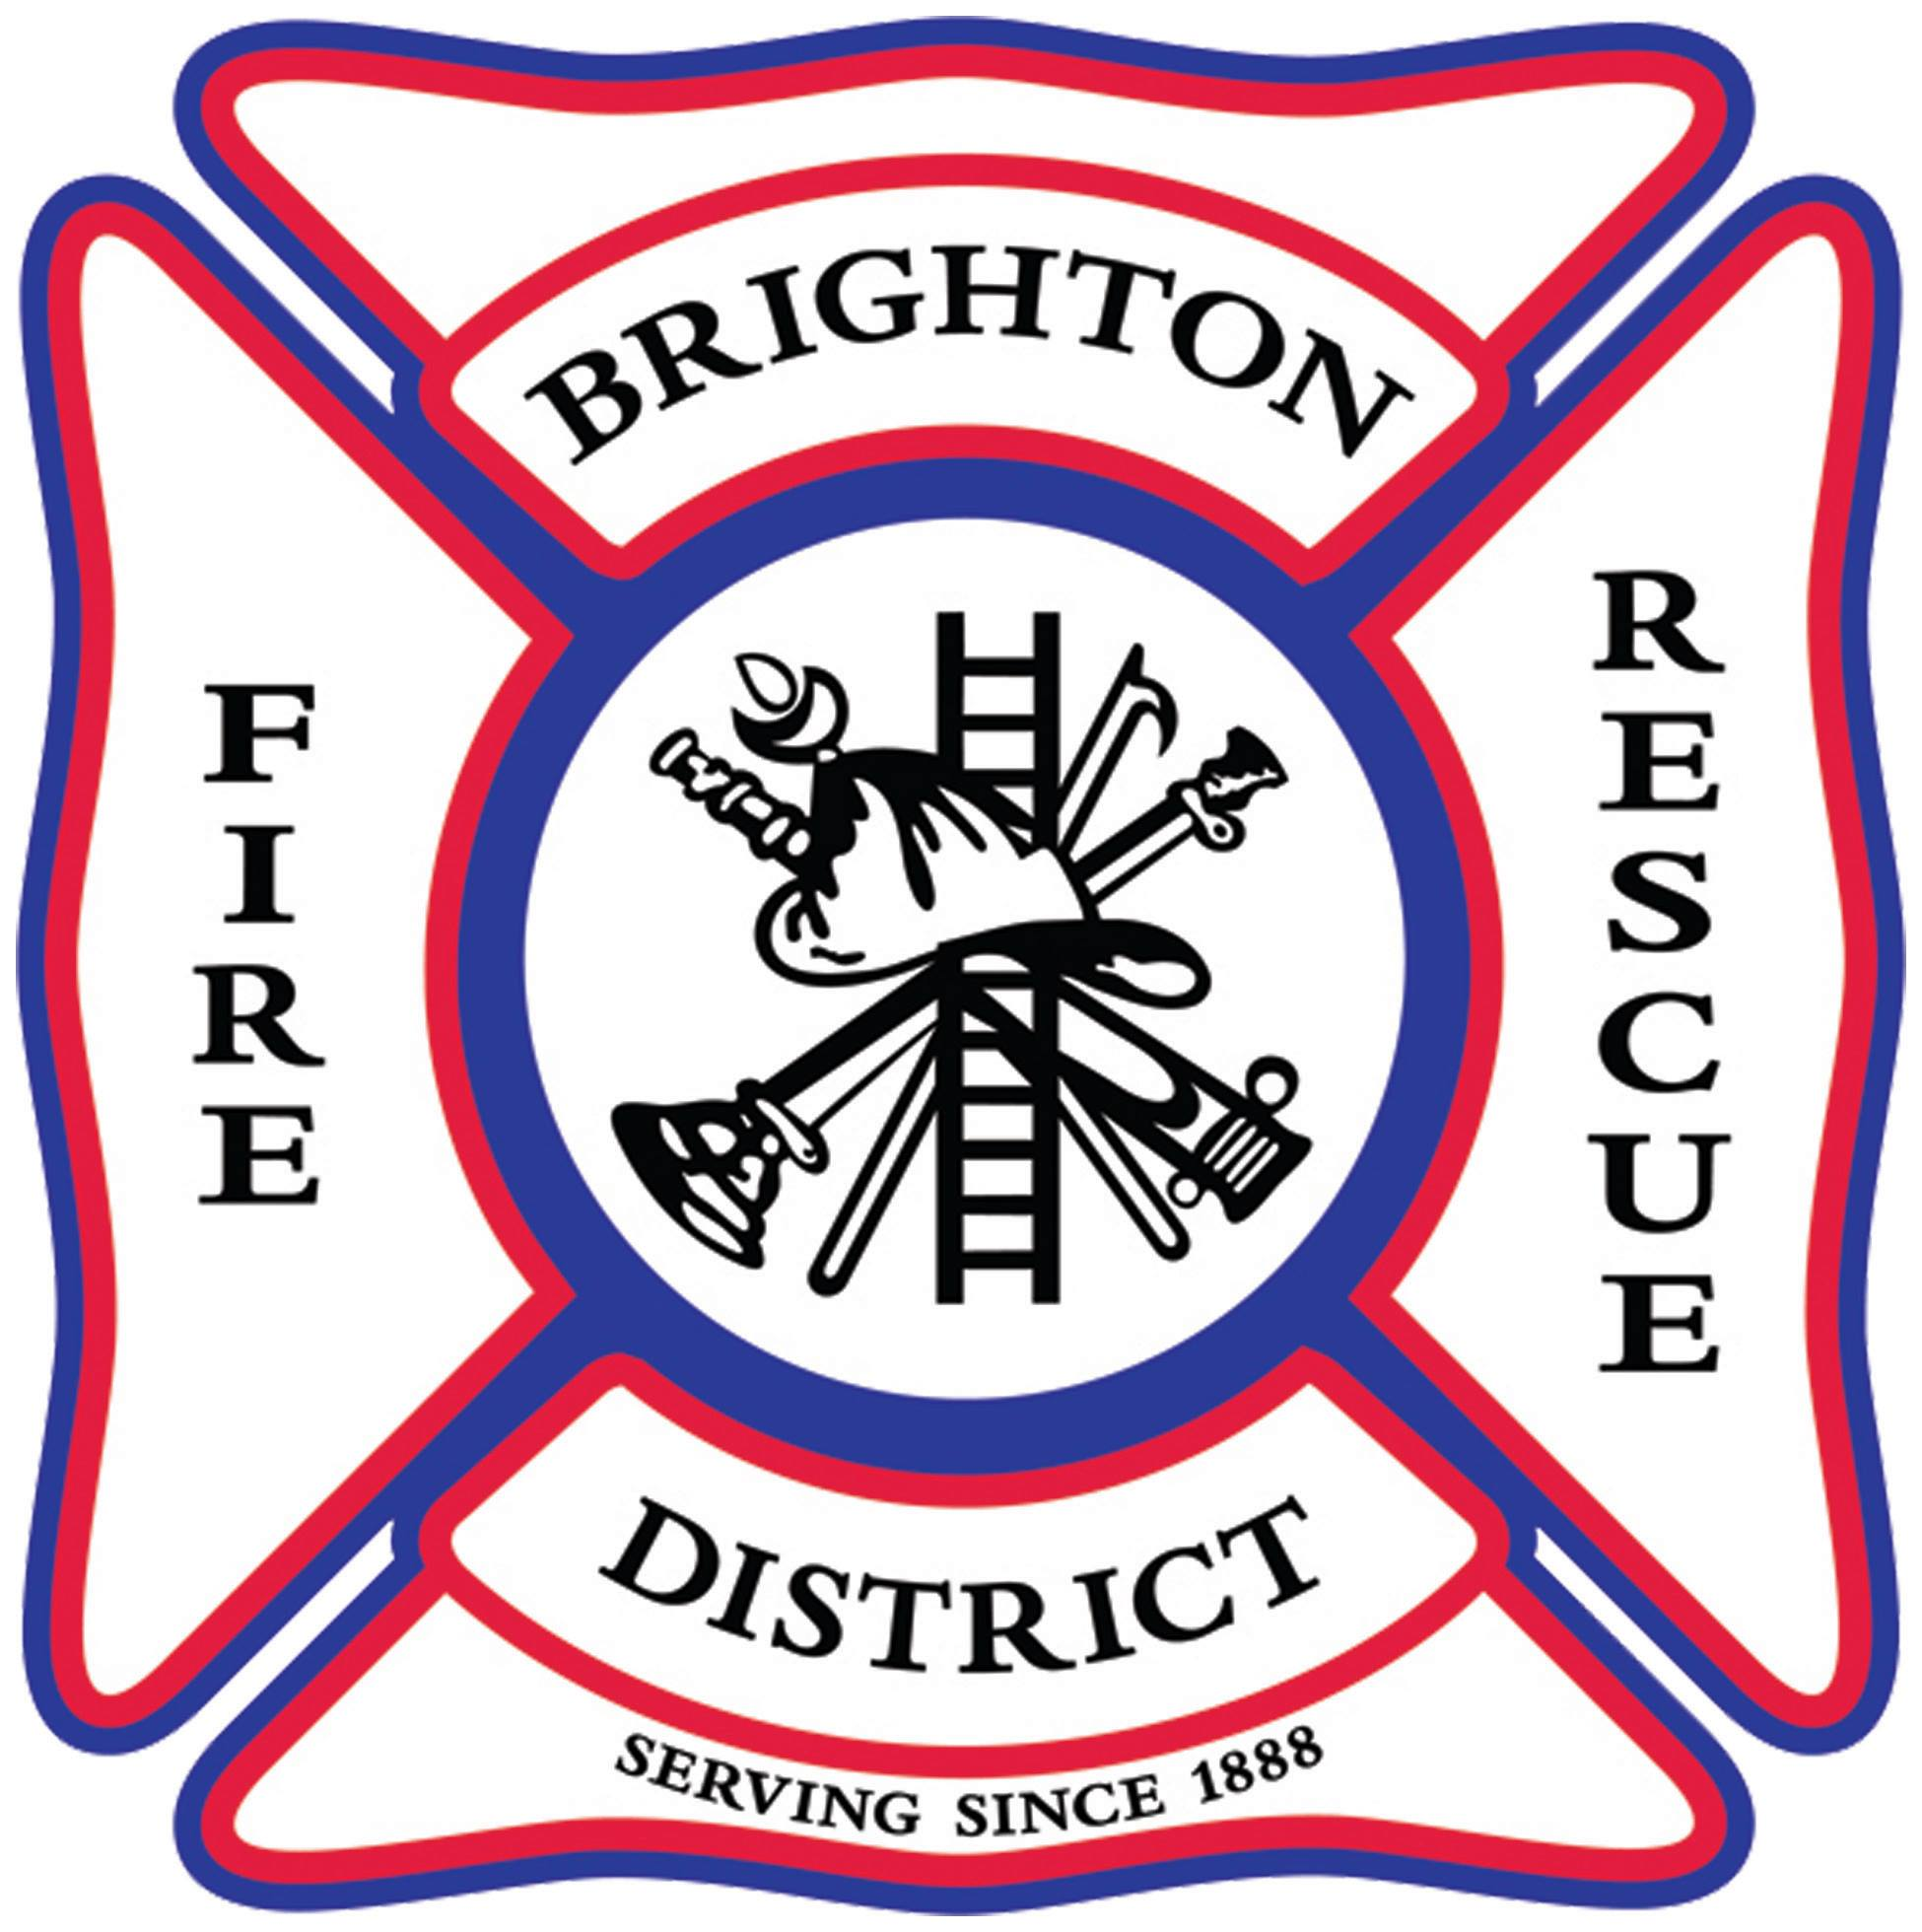 Brighton Fire Rescue District logo, Brighton, CO